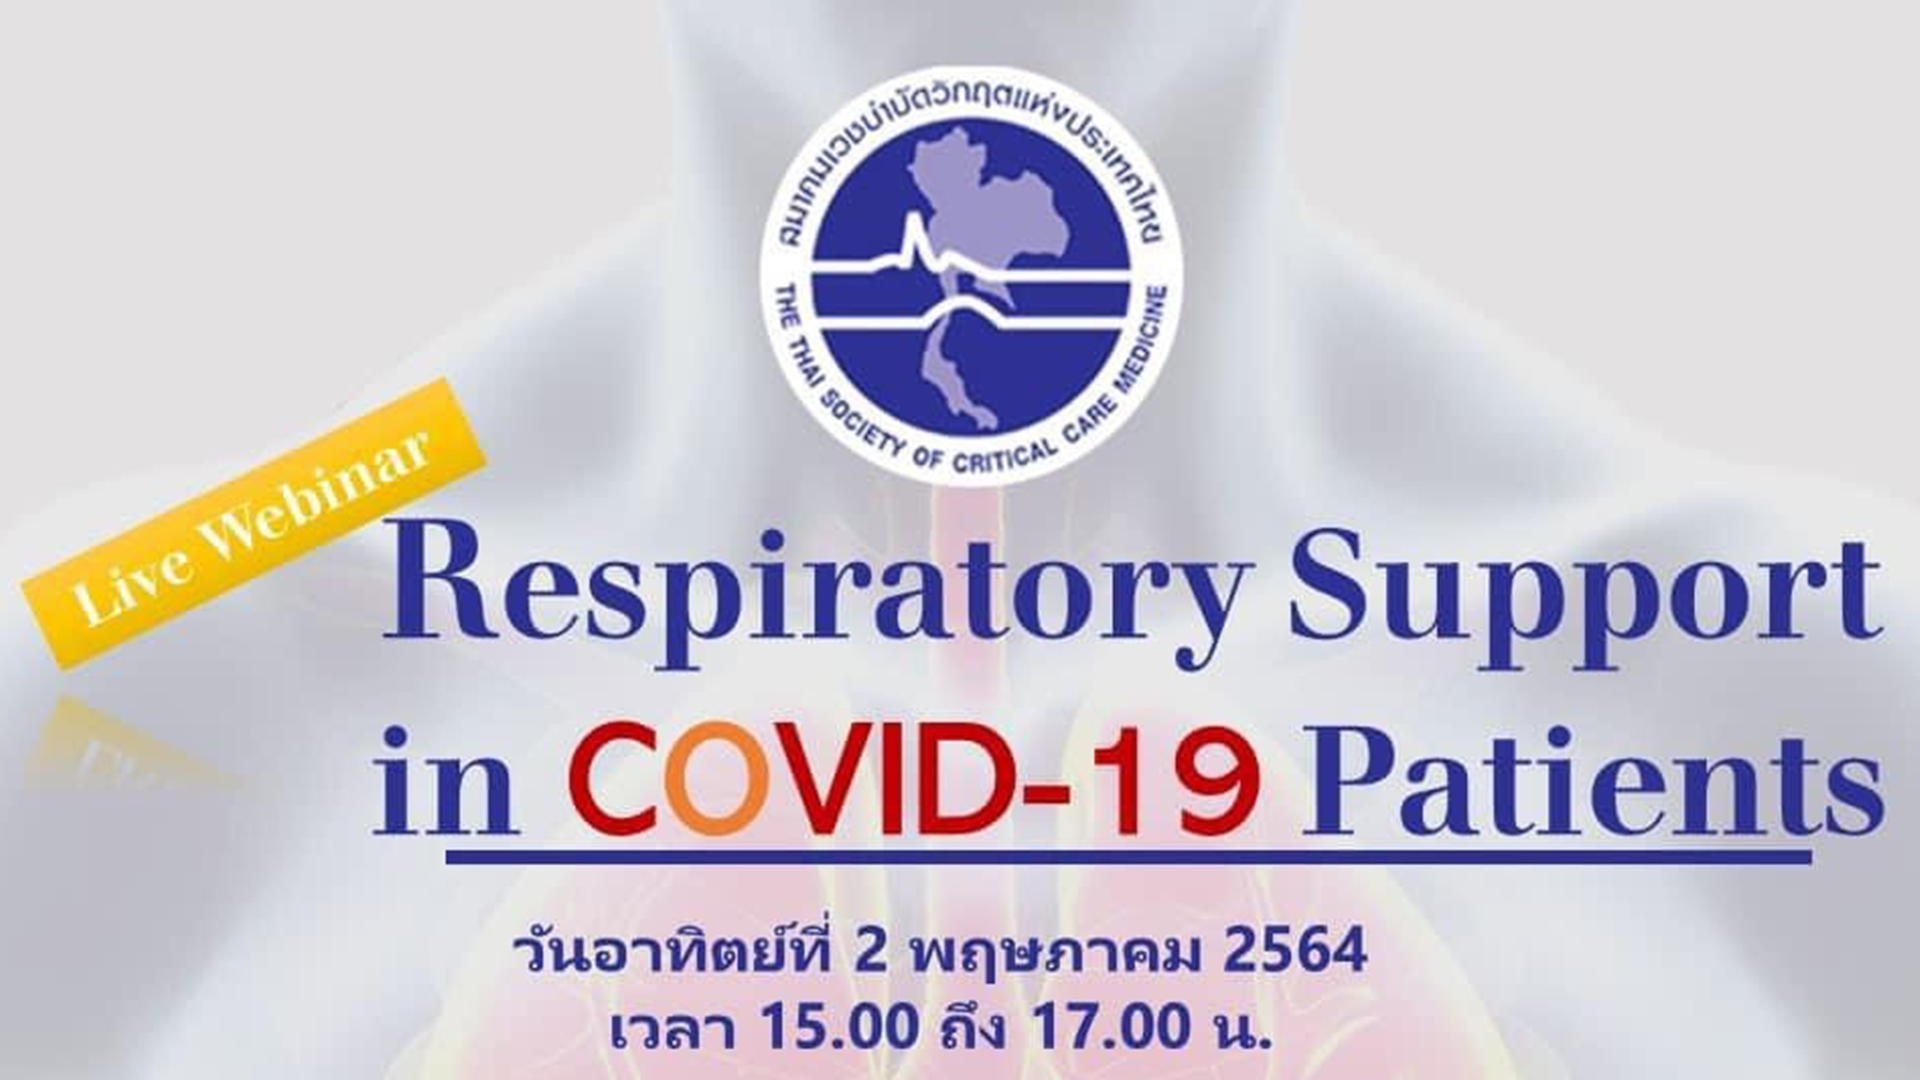 Webinar เรื่อง respiratory support in COVID19 patients